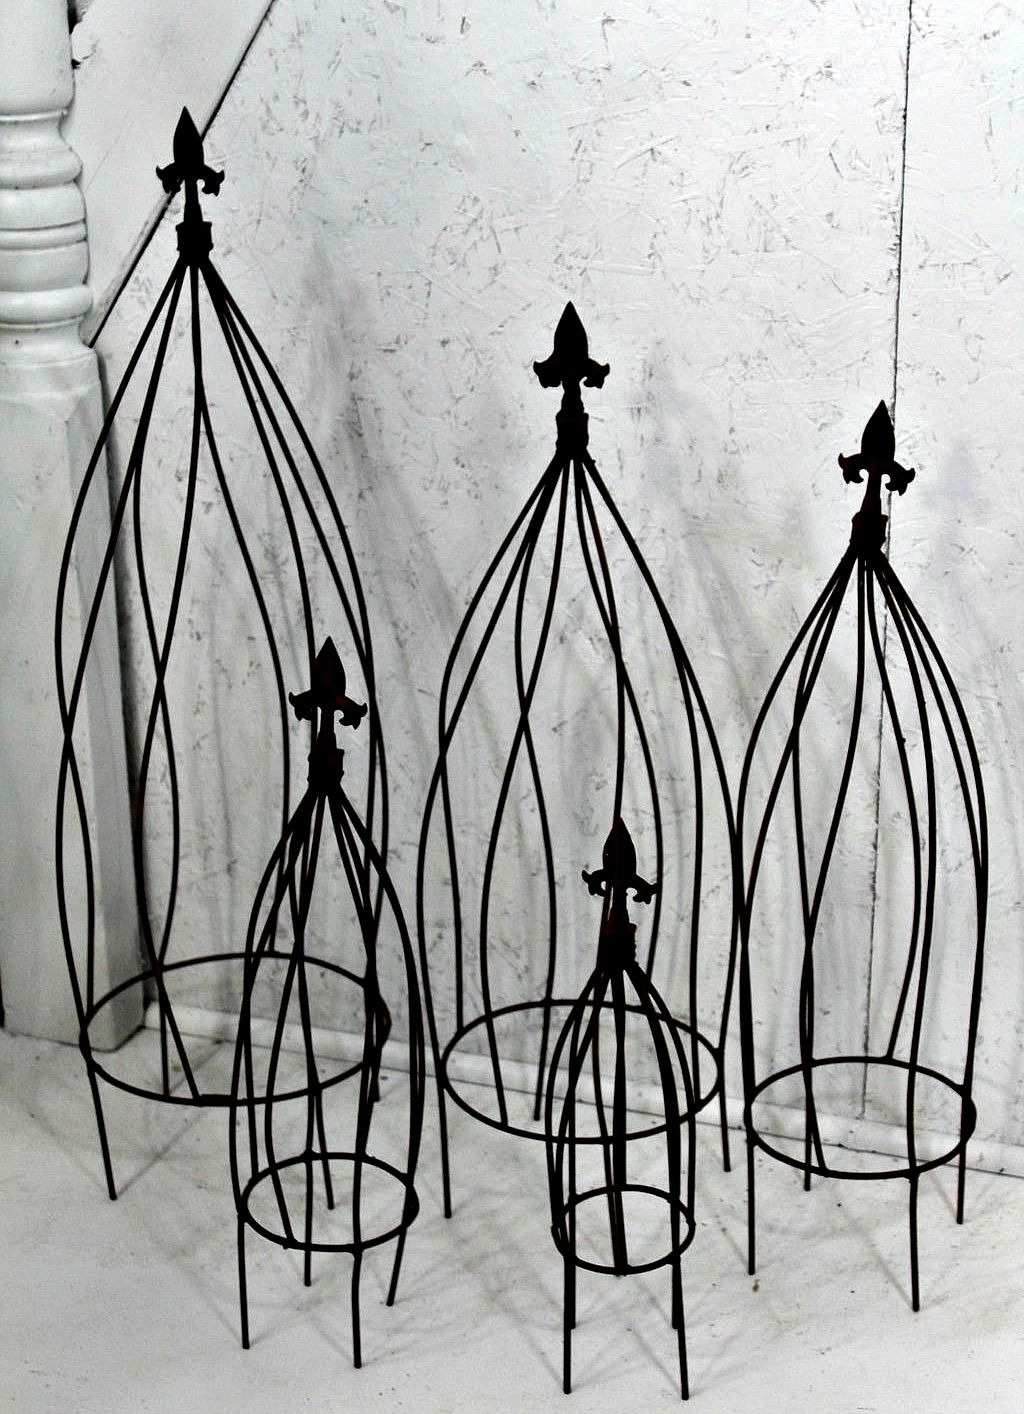 Wrought Iron Twist Flower Garden Trellis 5 sizes (With